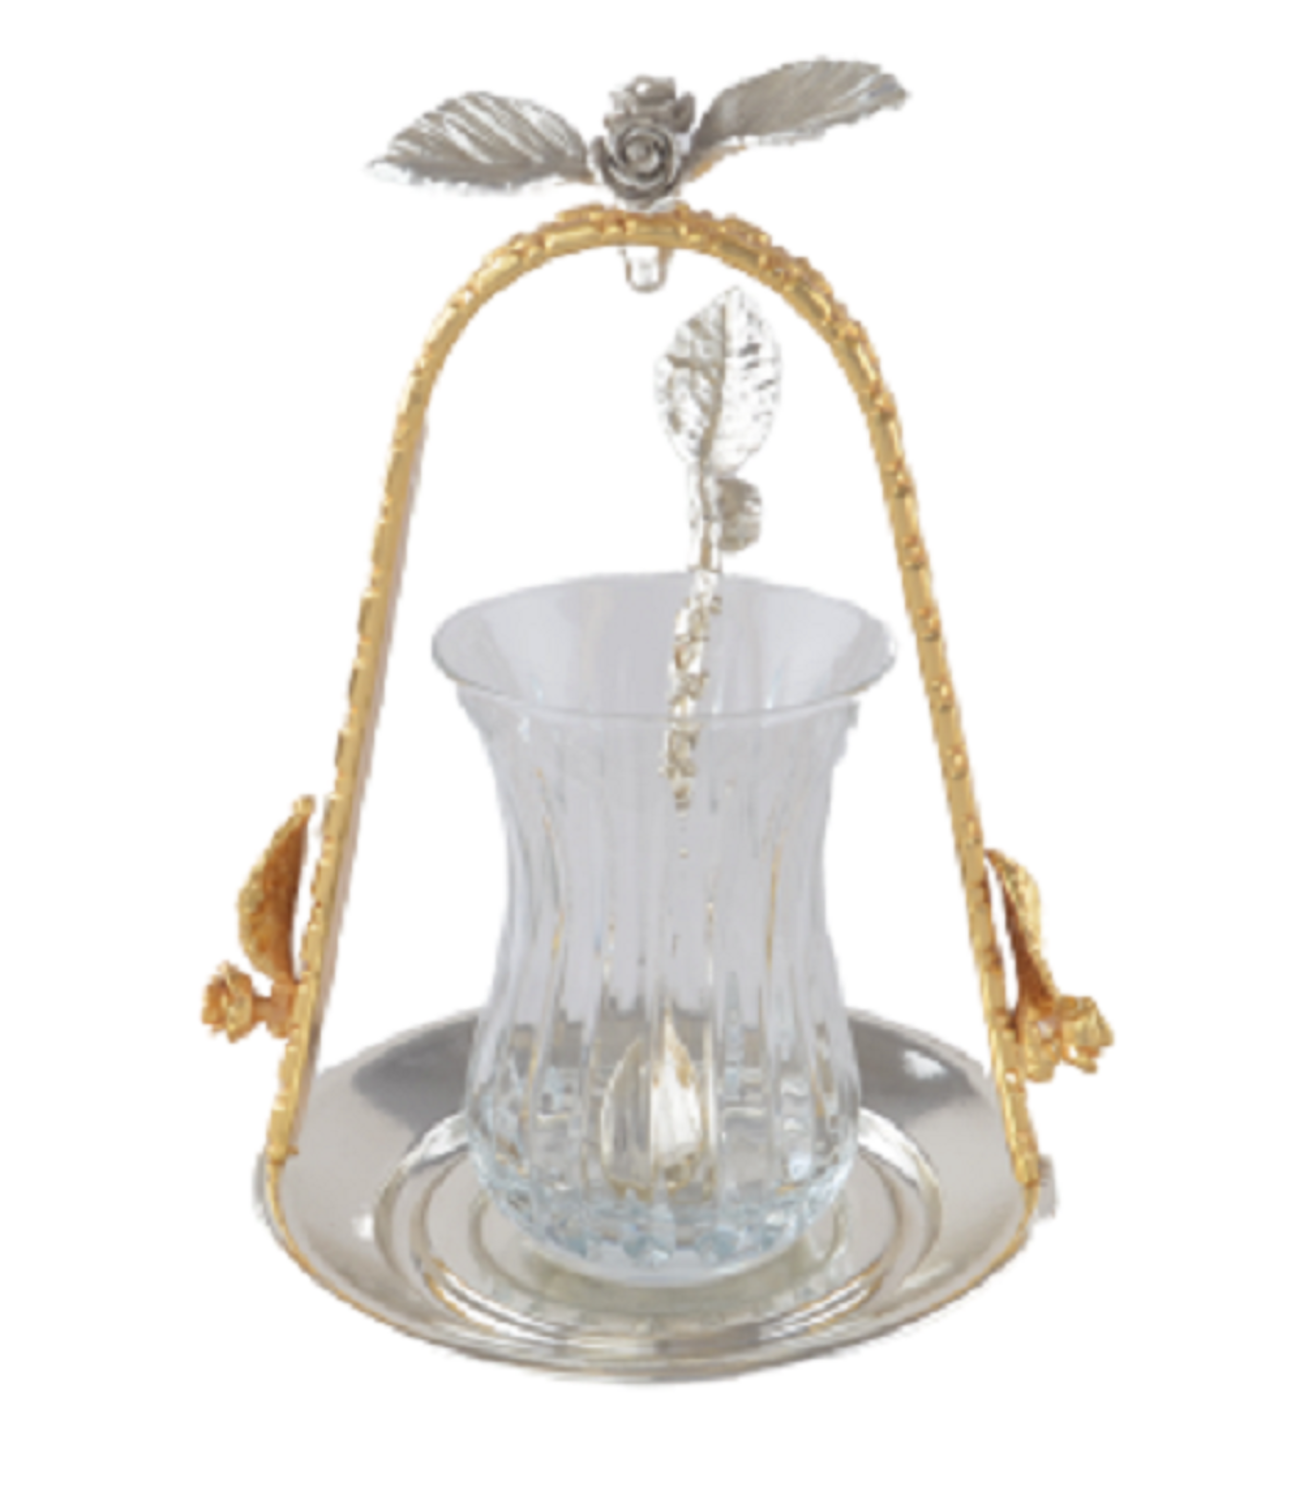 Picture of MEVLANA TEA CUP WITH SILVER-GOLD HANGED TEA PLATE